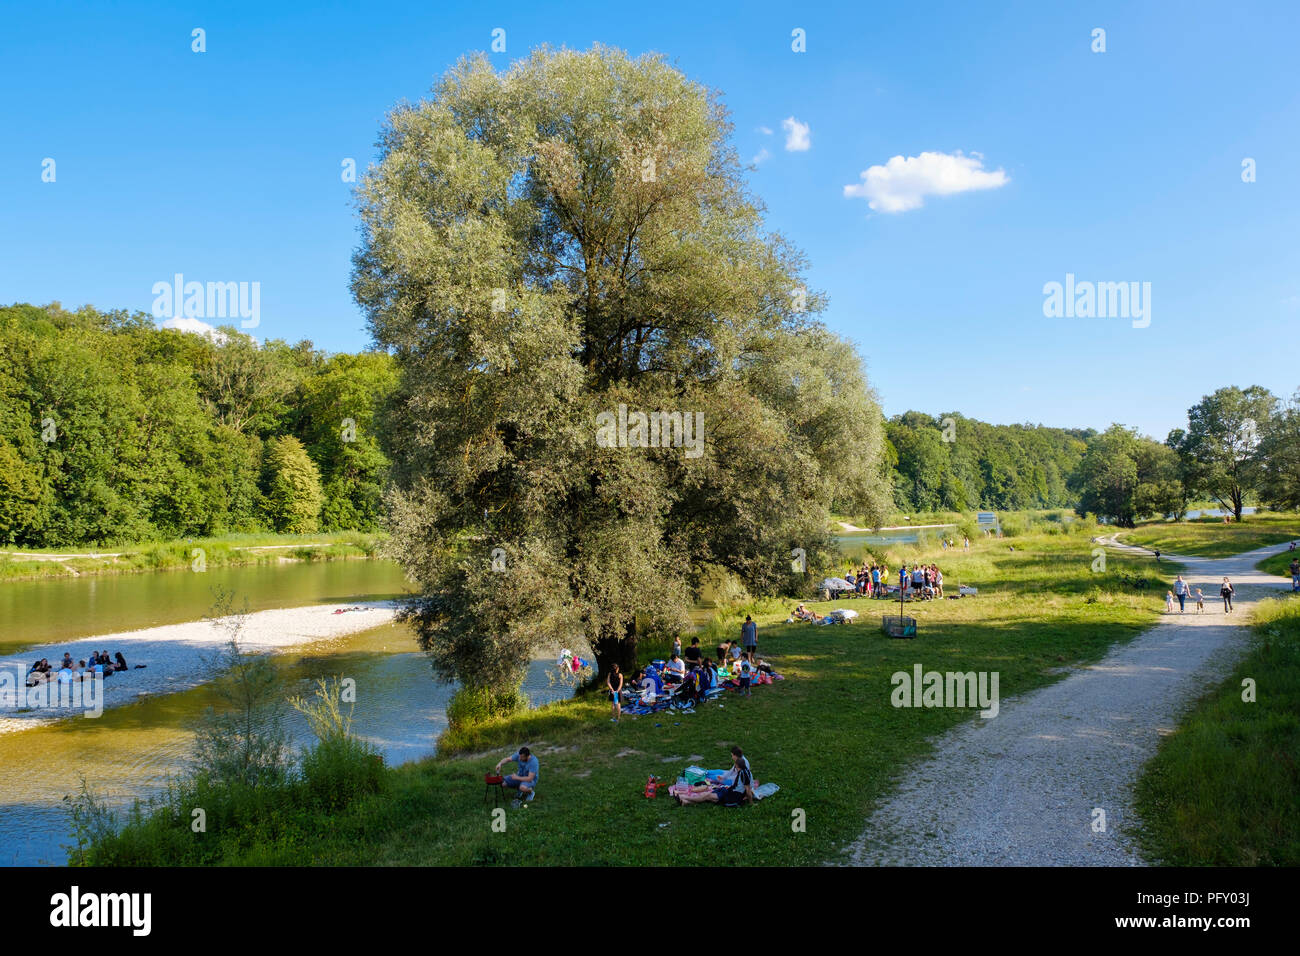 Picnic on the riverbank, Isar, at the Marienklausensteg, Thalkirchen, Munich, Upper Bavaria, Bavaria, Germany - Stock Image